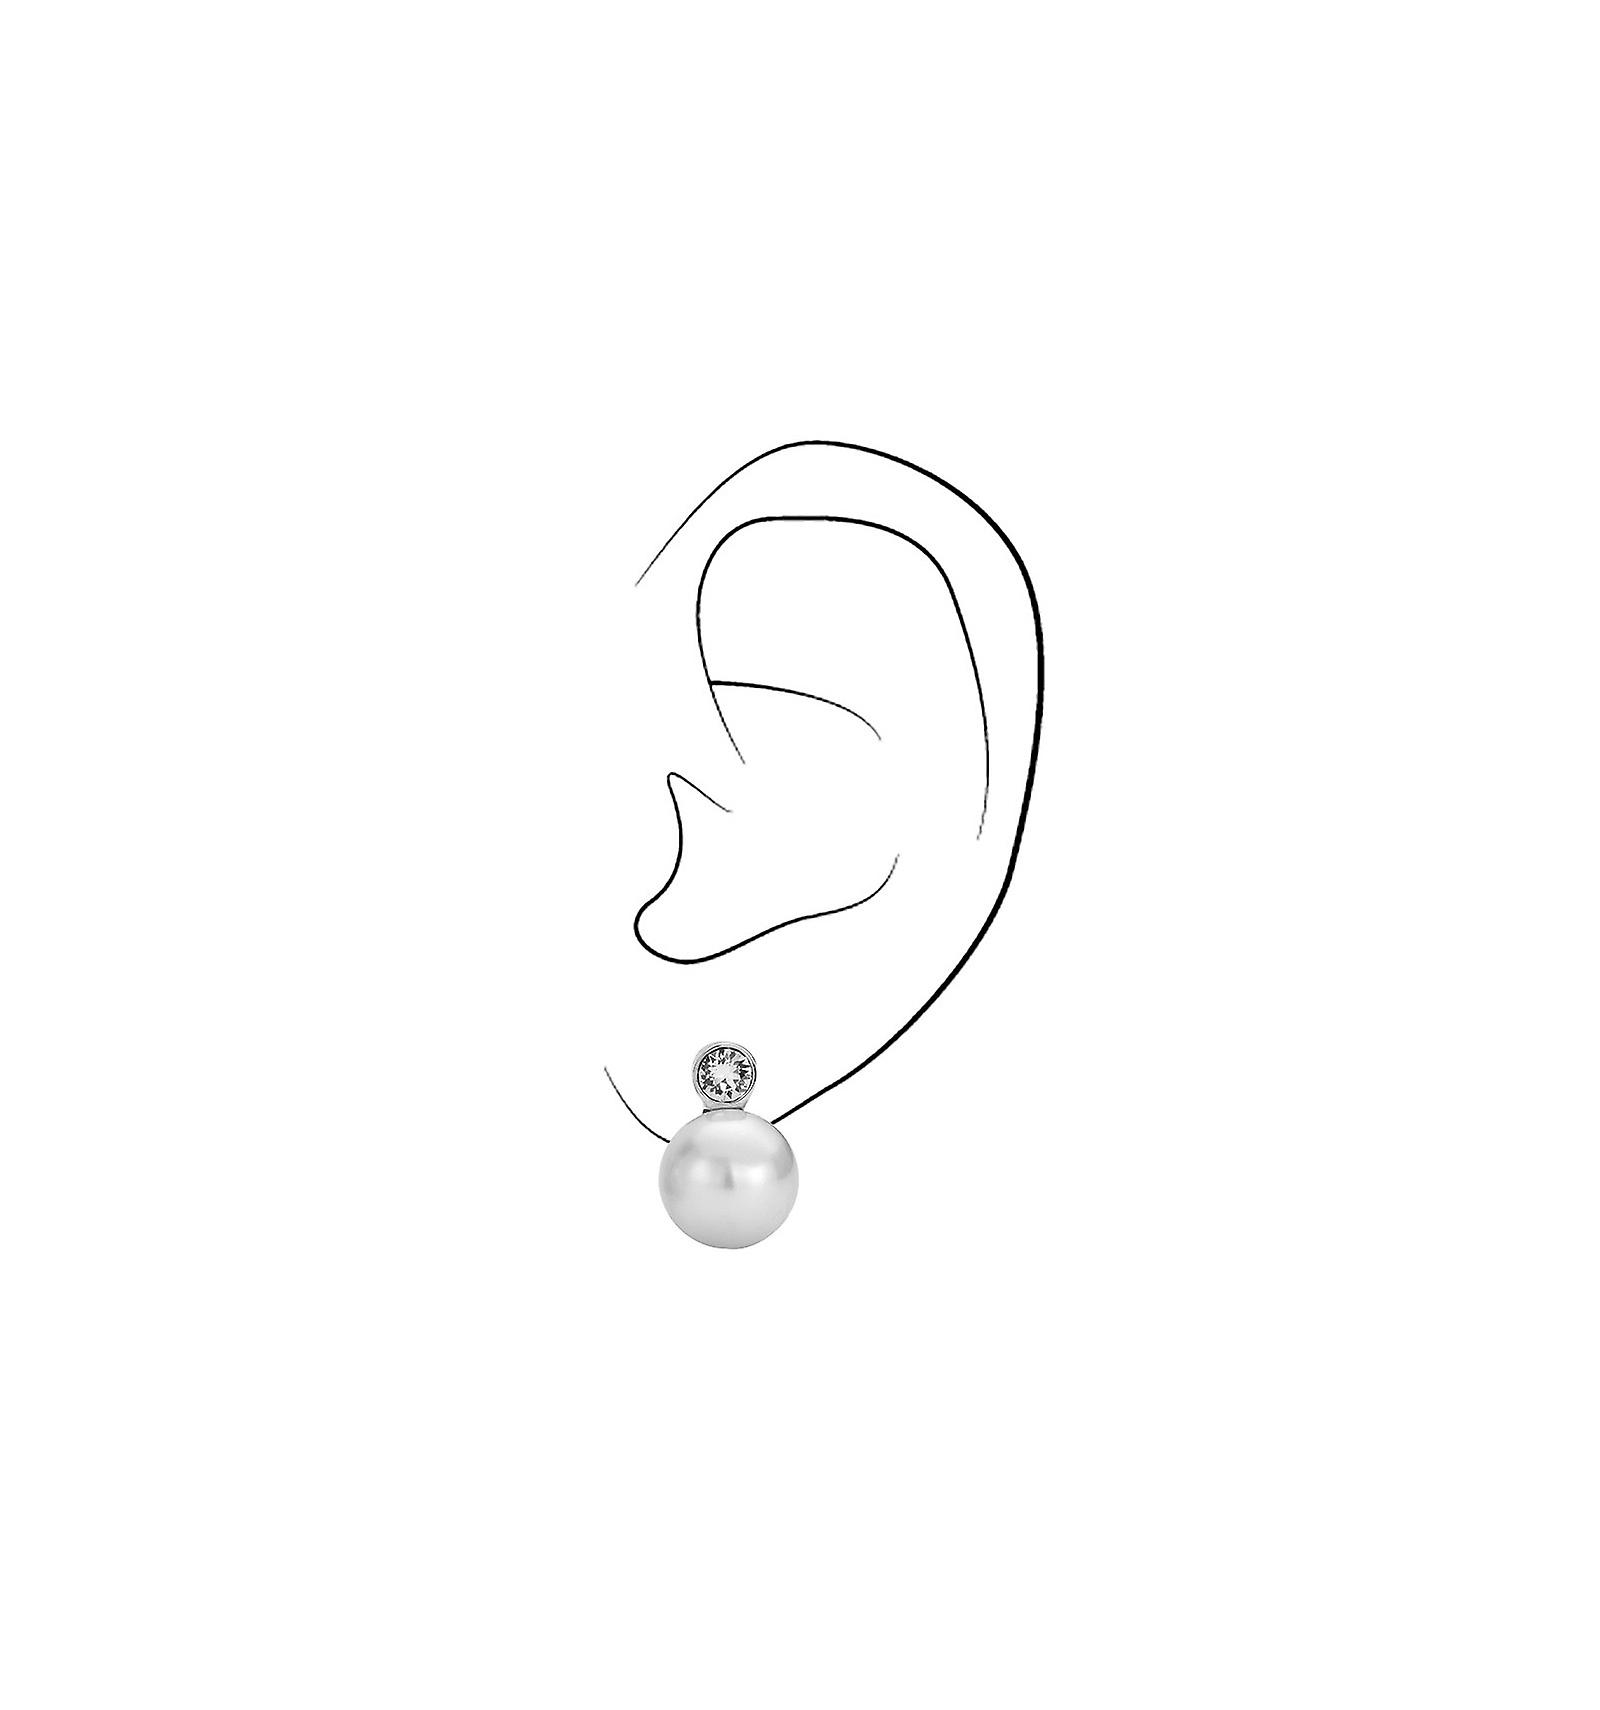 Reiziger clip Earring-12mm witte parel-rhodium plated-113487